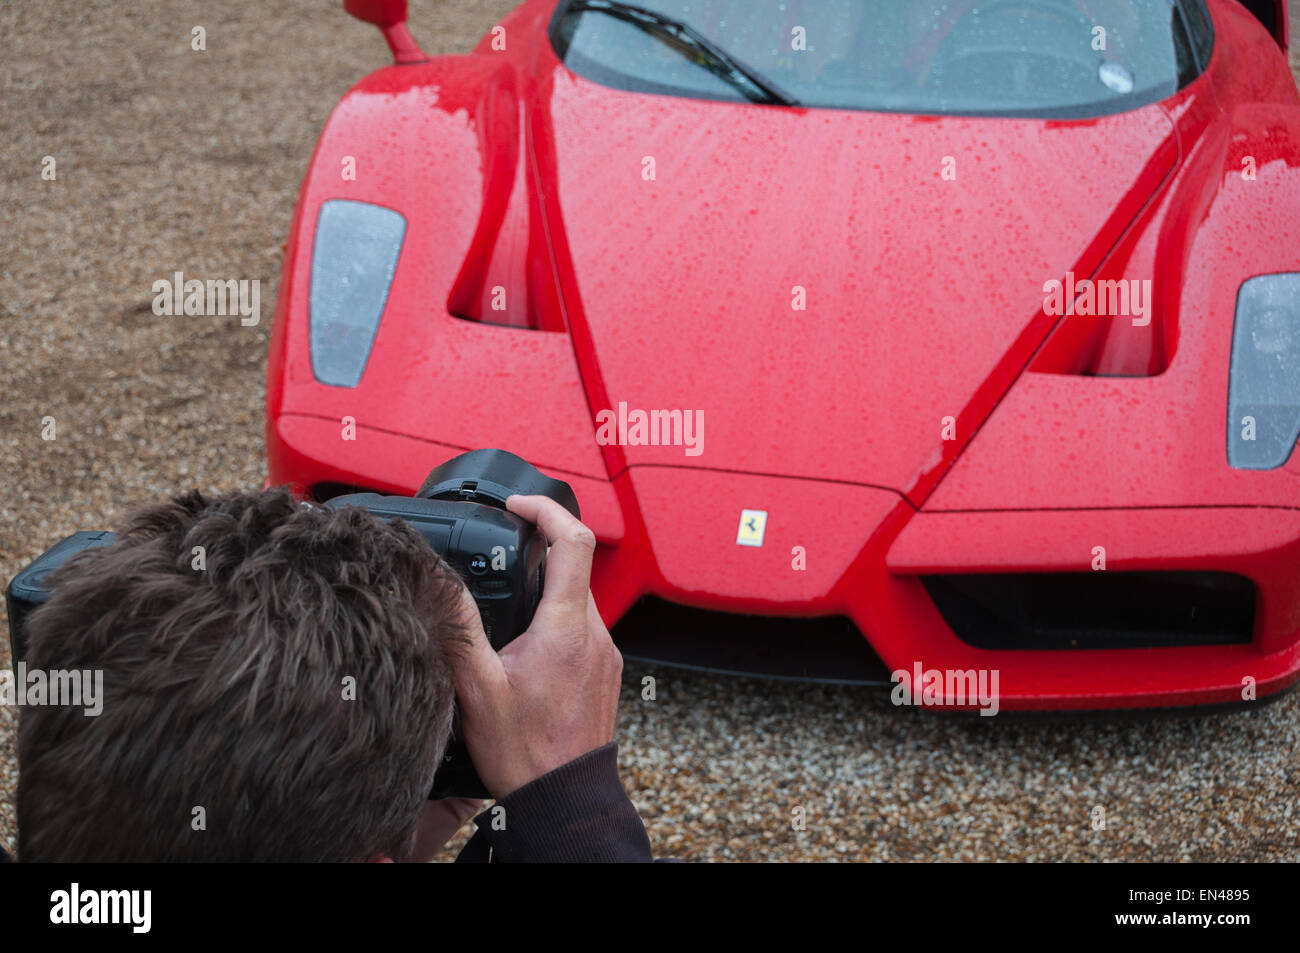 Ferrari Enzo at the Ferrari Owners Club Rally at Blenheim Palace, Woodstock, Oxfordshire - Stock Image